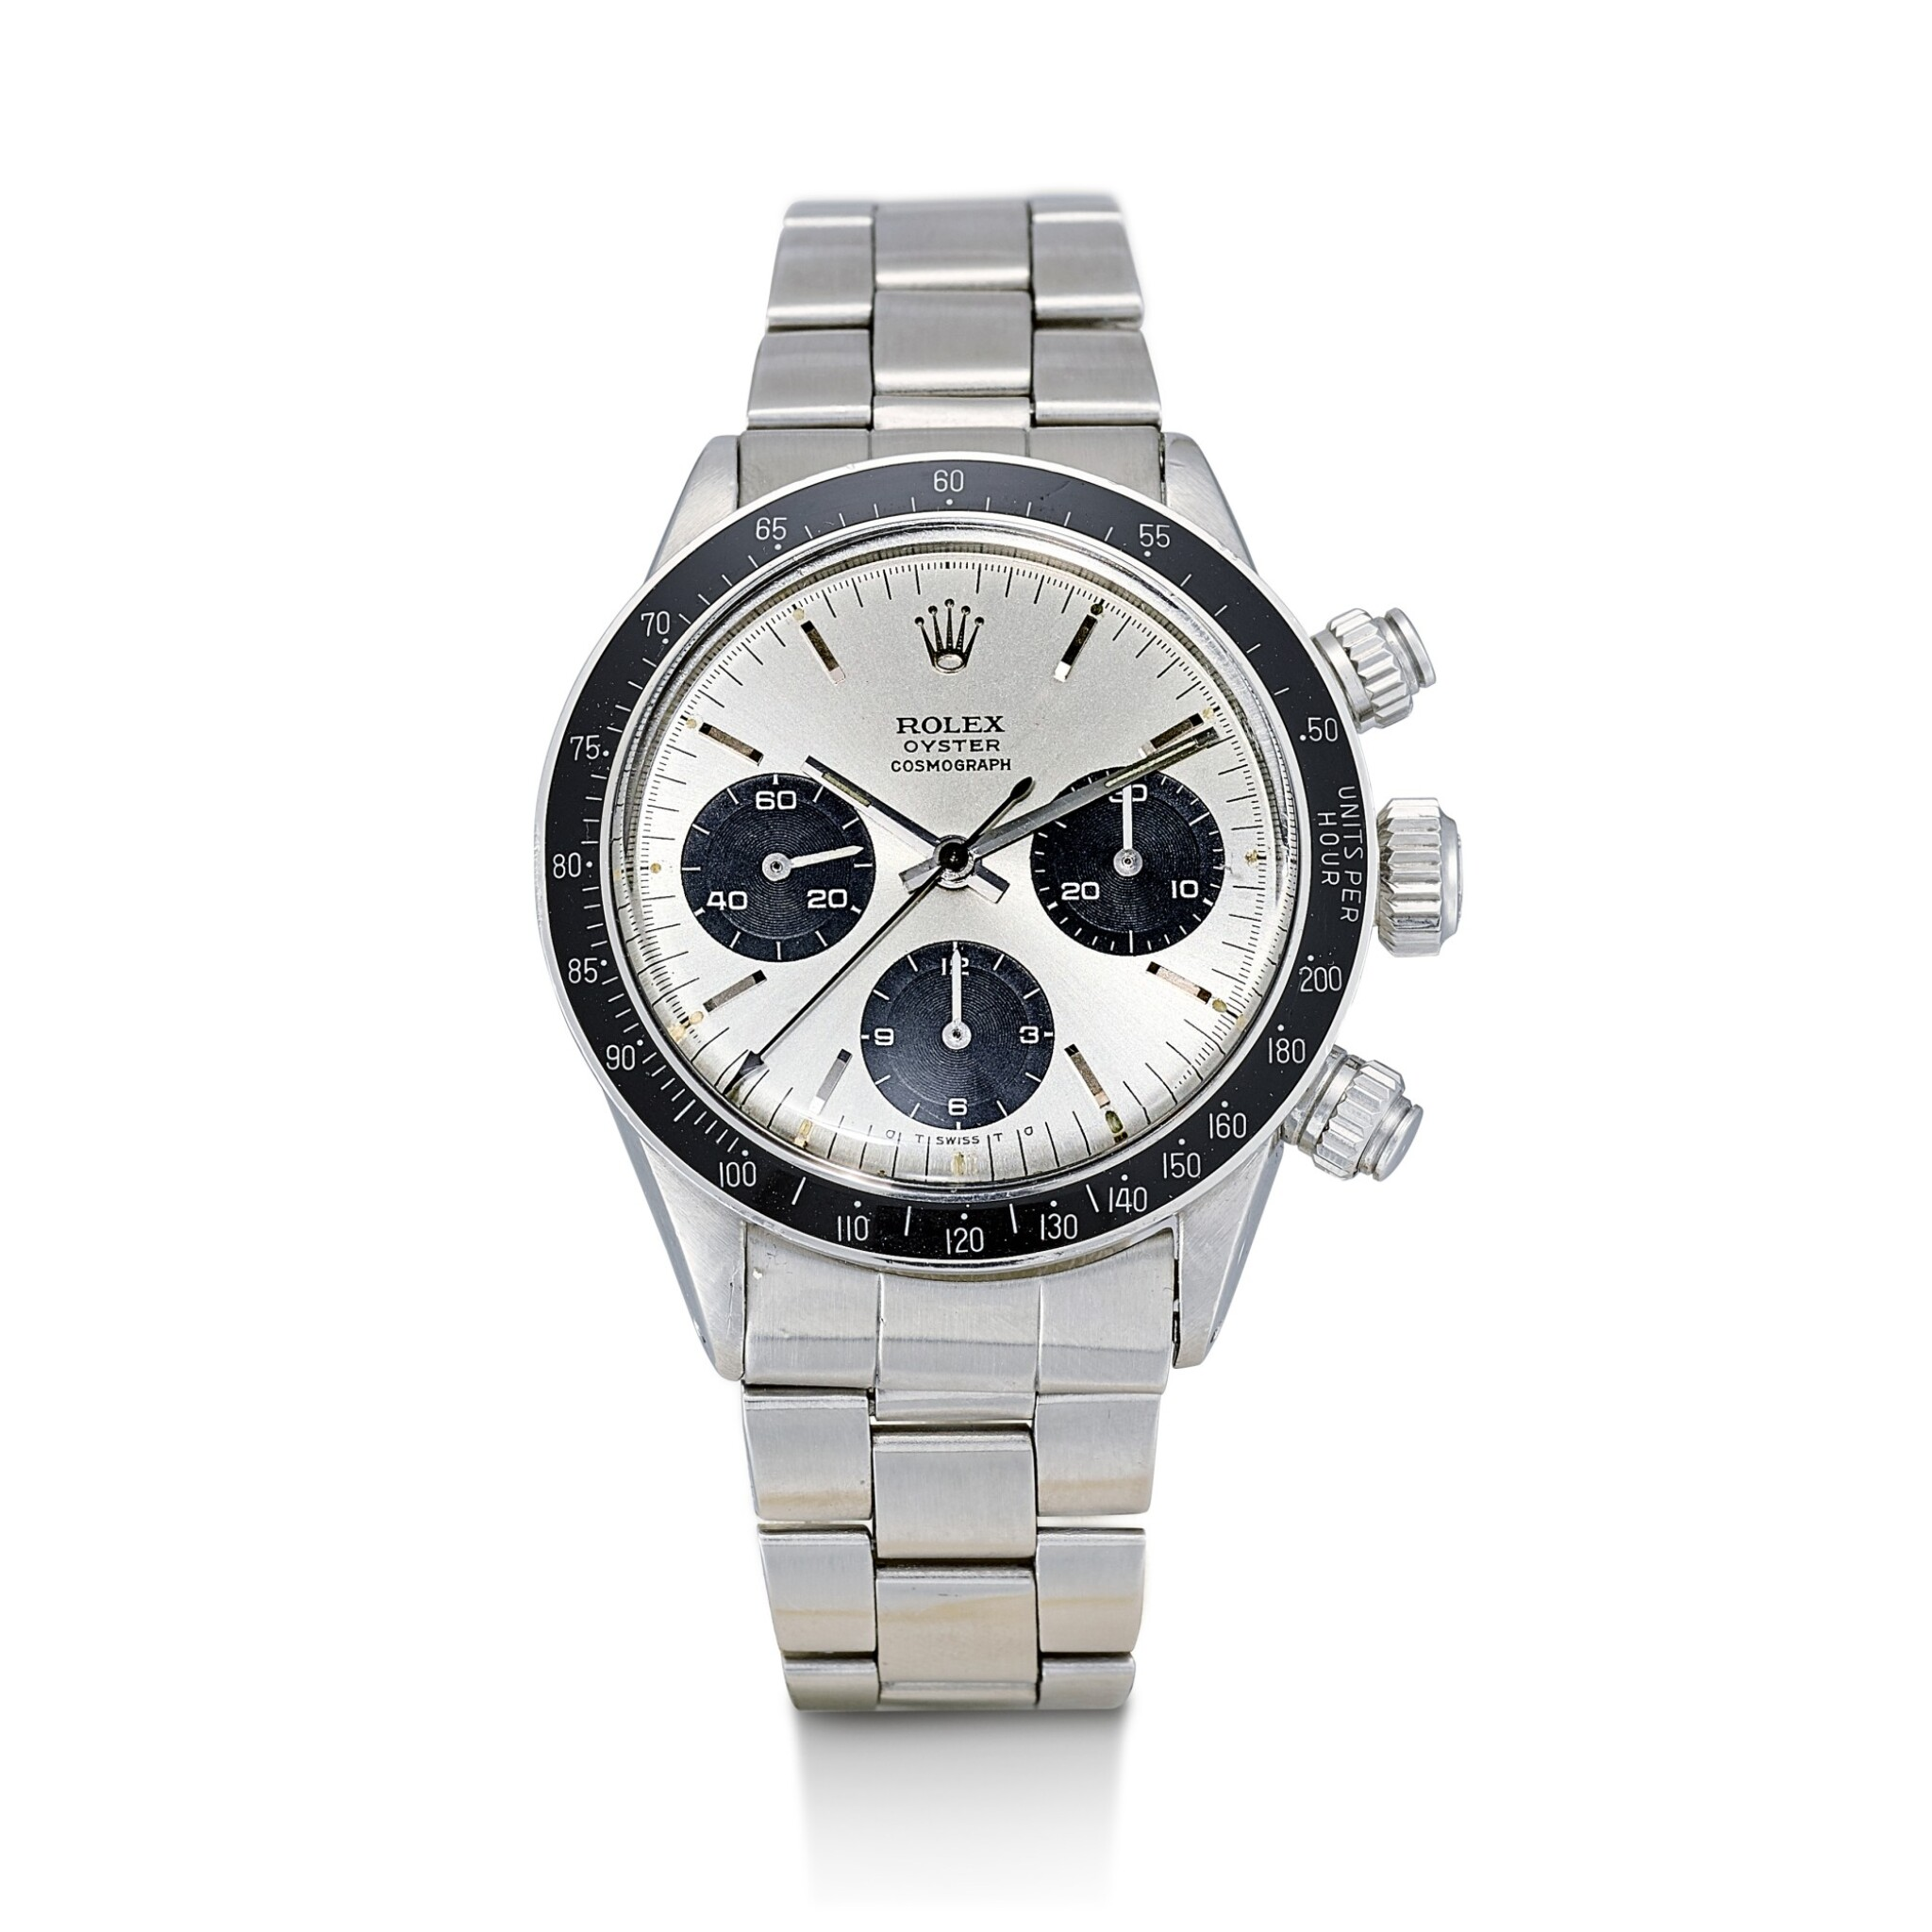 View full screen - View 1 of Lot 163. ROLEX | COSMOGRAPH DAYTONA, REFERENCE 6263, A STAINLESS STEEL CHRONOGRAPH WRISTWATCH WITH SIGMA DIAL AND BRACELET, CIRCA 1972.